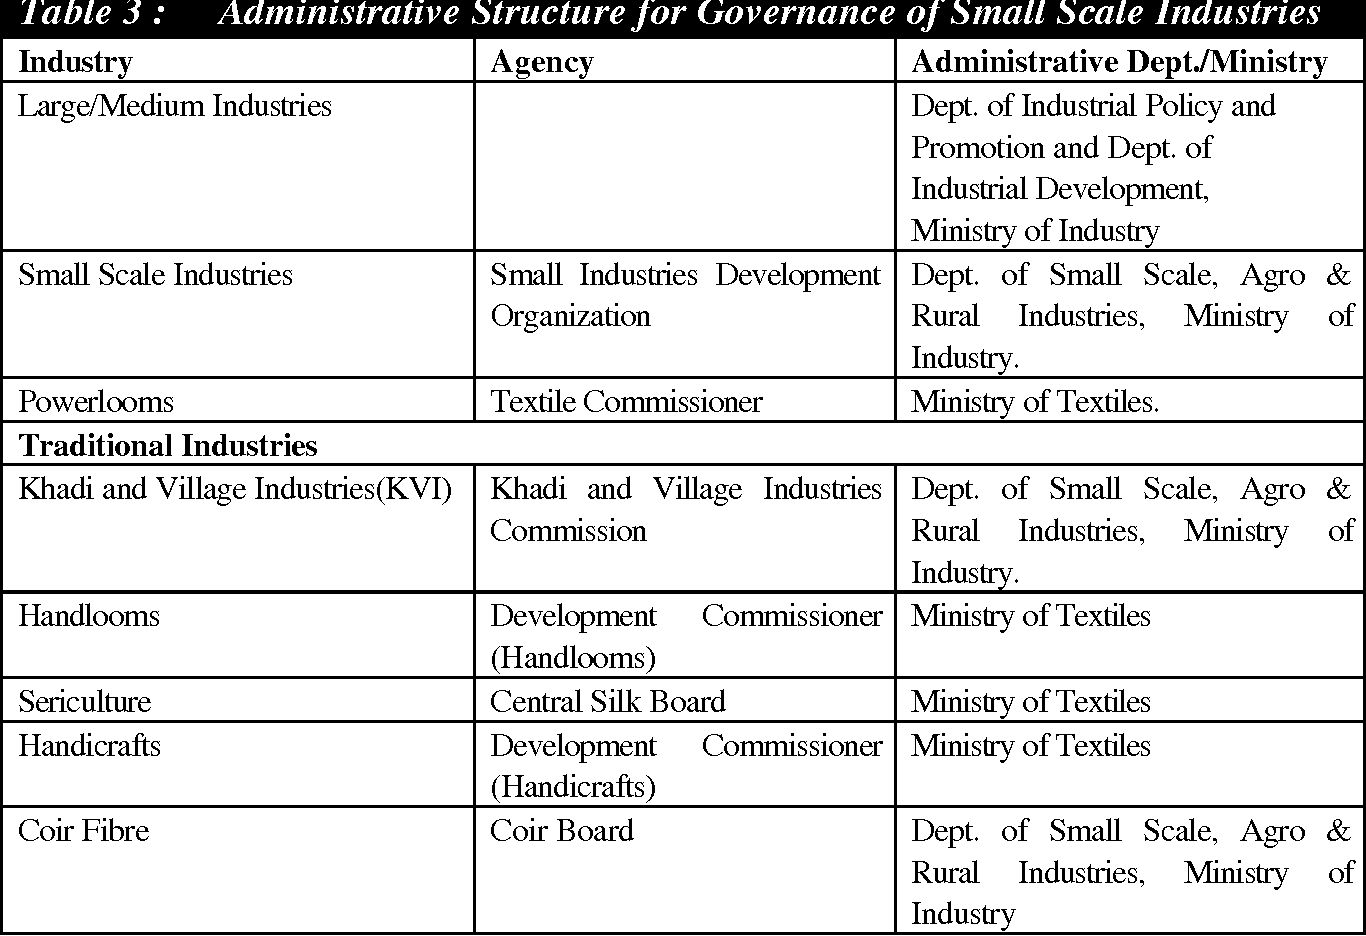 Table 3 from STUDY OF SMALL & MEDIUM ENTERPRISE ( SME